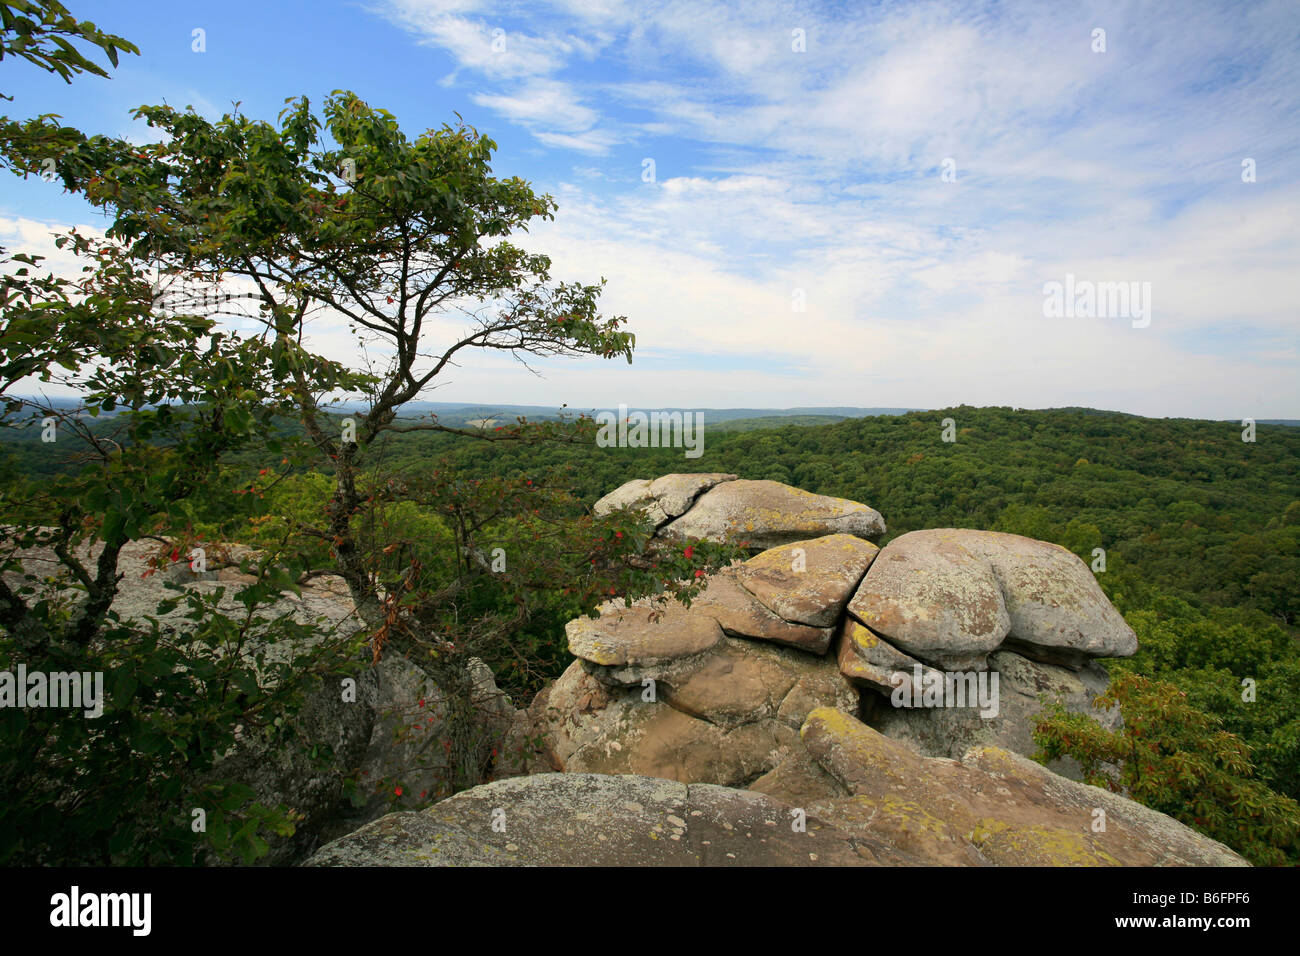 Sandstone Rocks In The Garden Of The Gods Shawnee National Forest Stock Photo Royalty Free